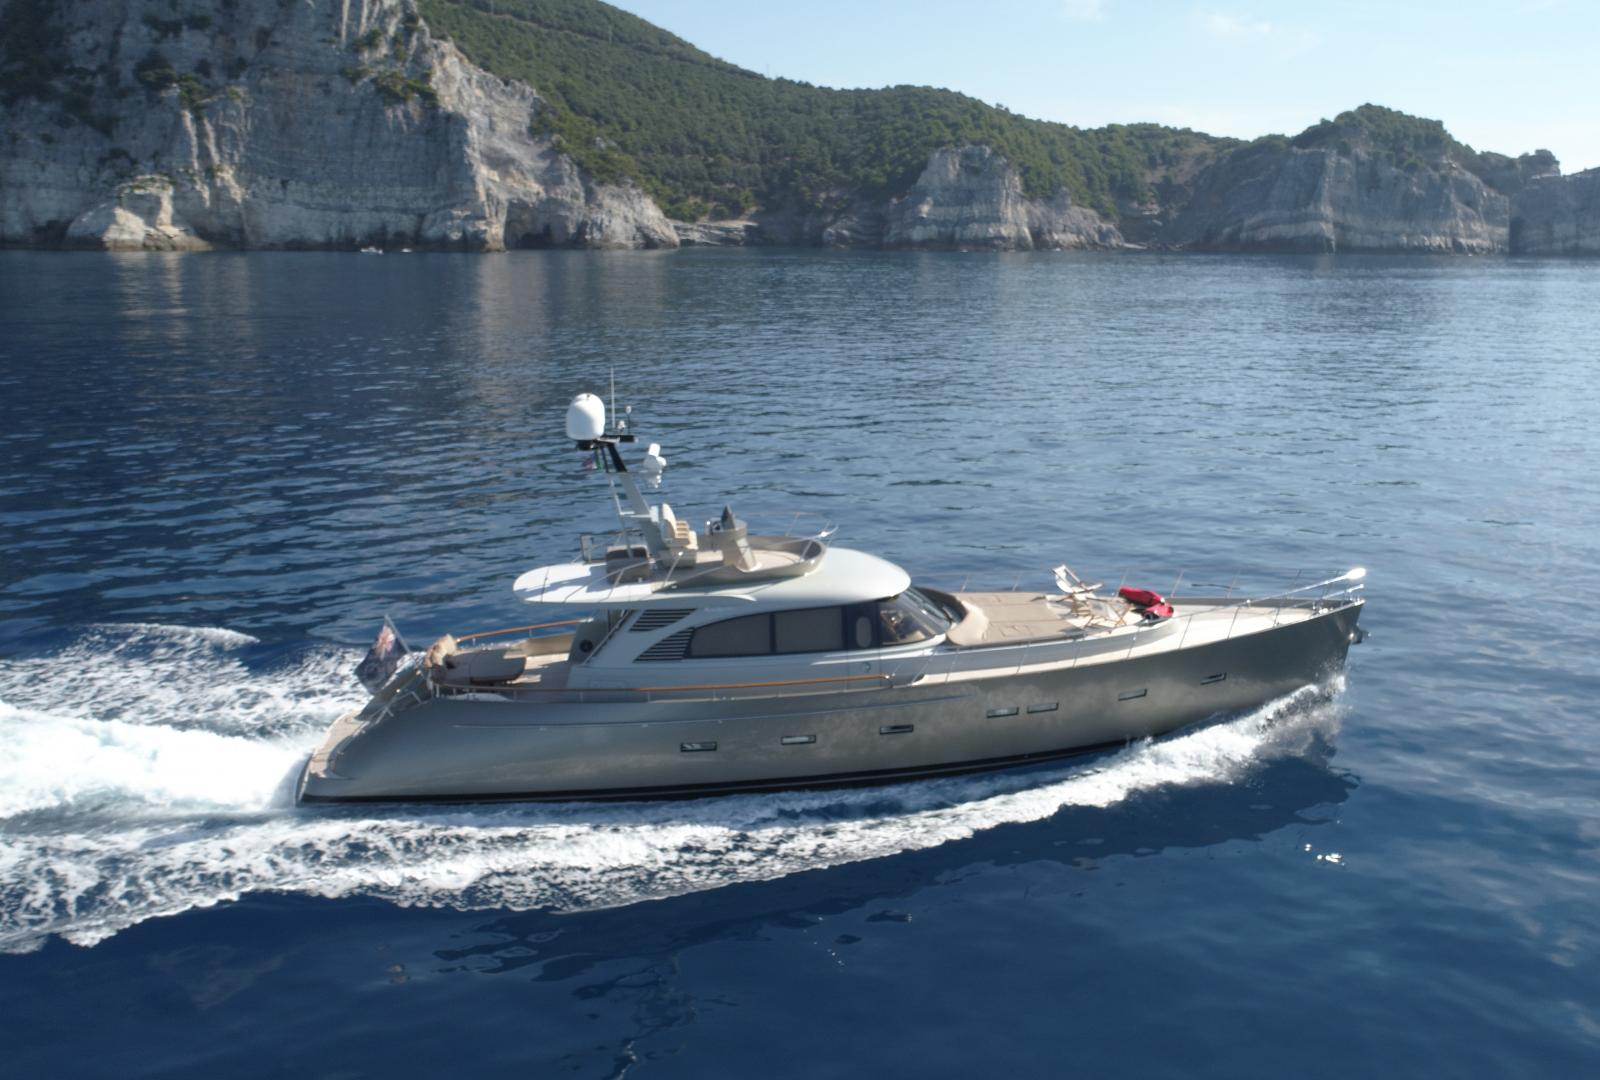 This Acico motor yacht AY74 named Jasmine has been sold by Van Der Vliet Dutch Quality Yachts